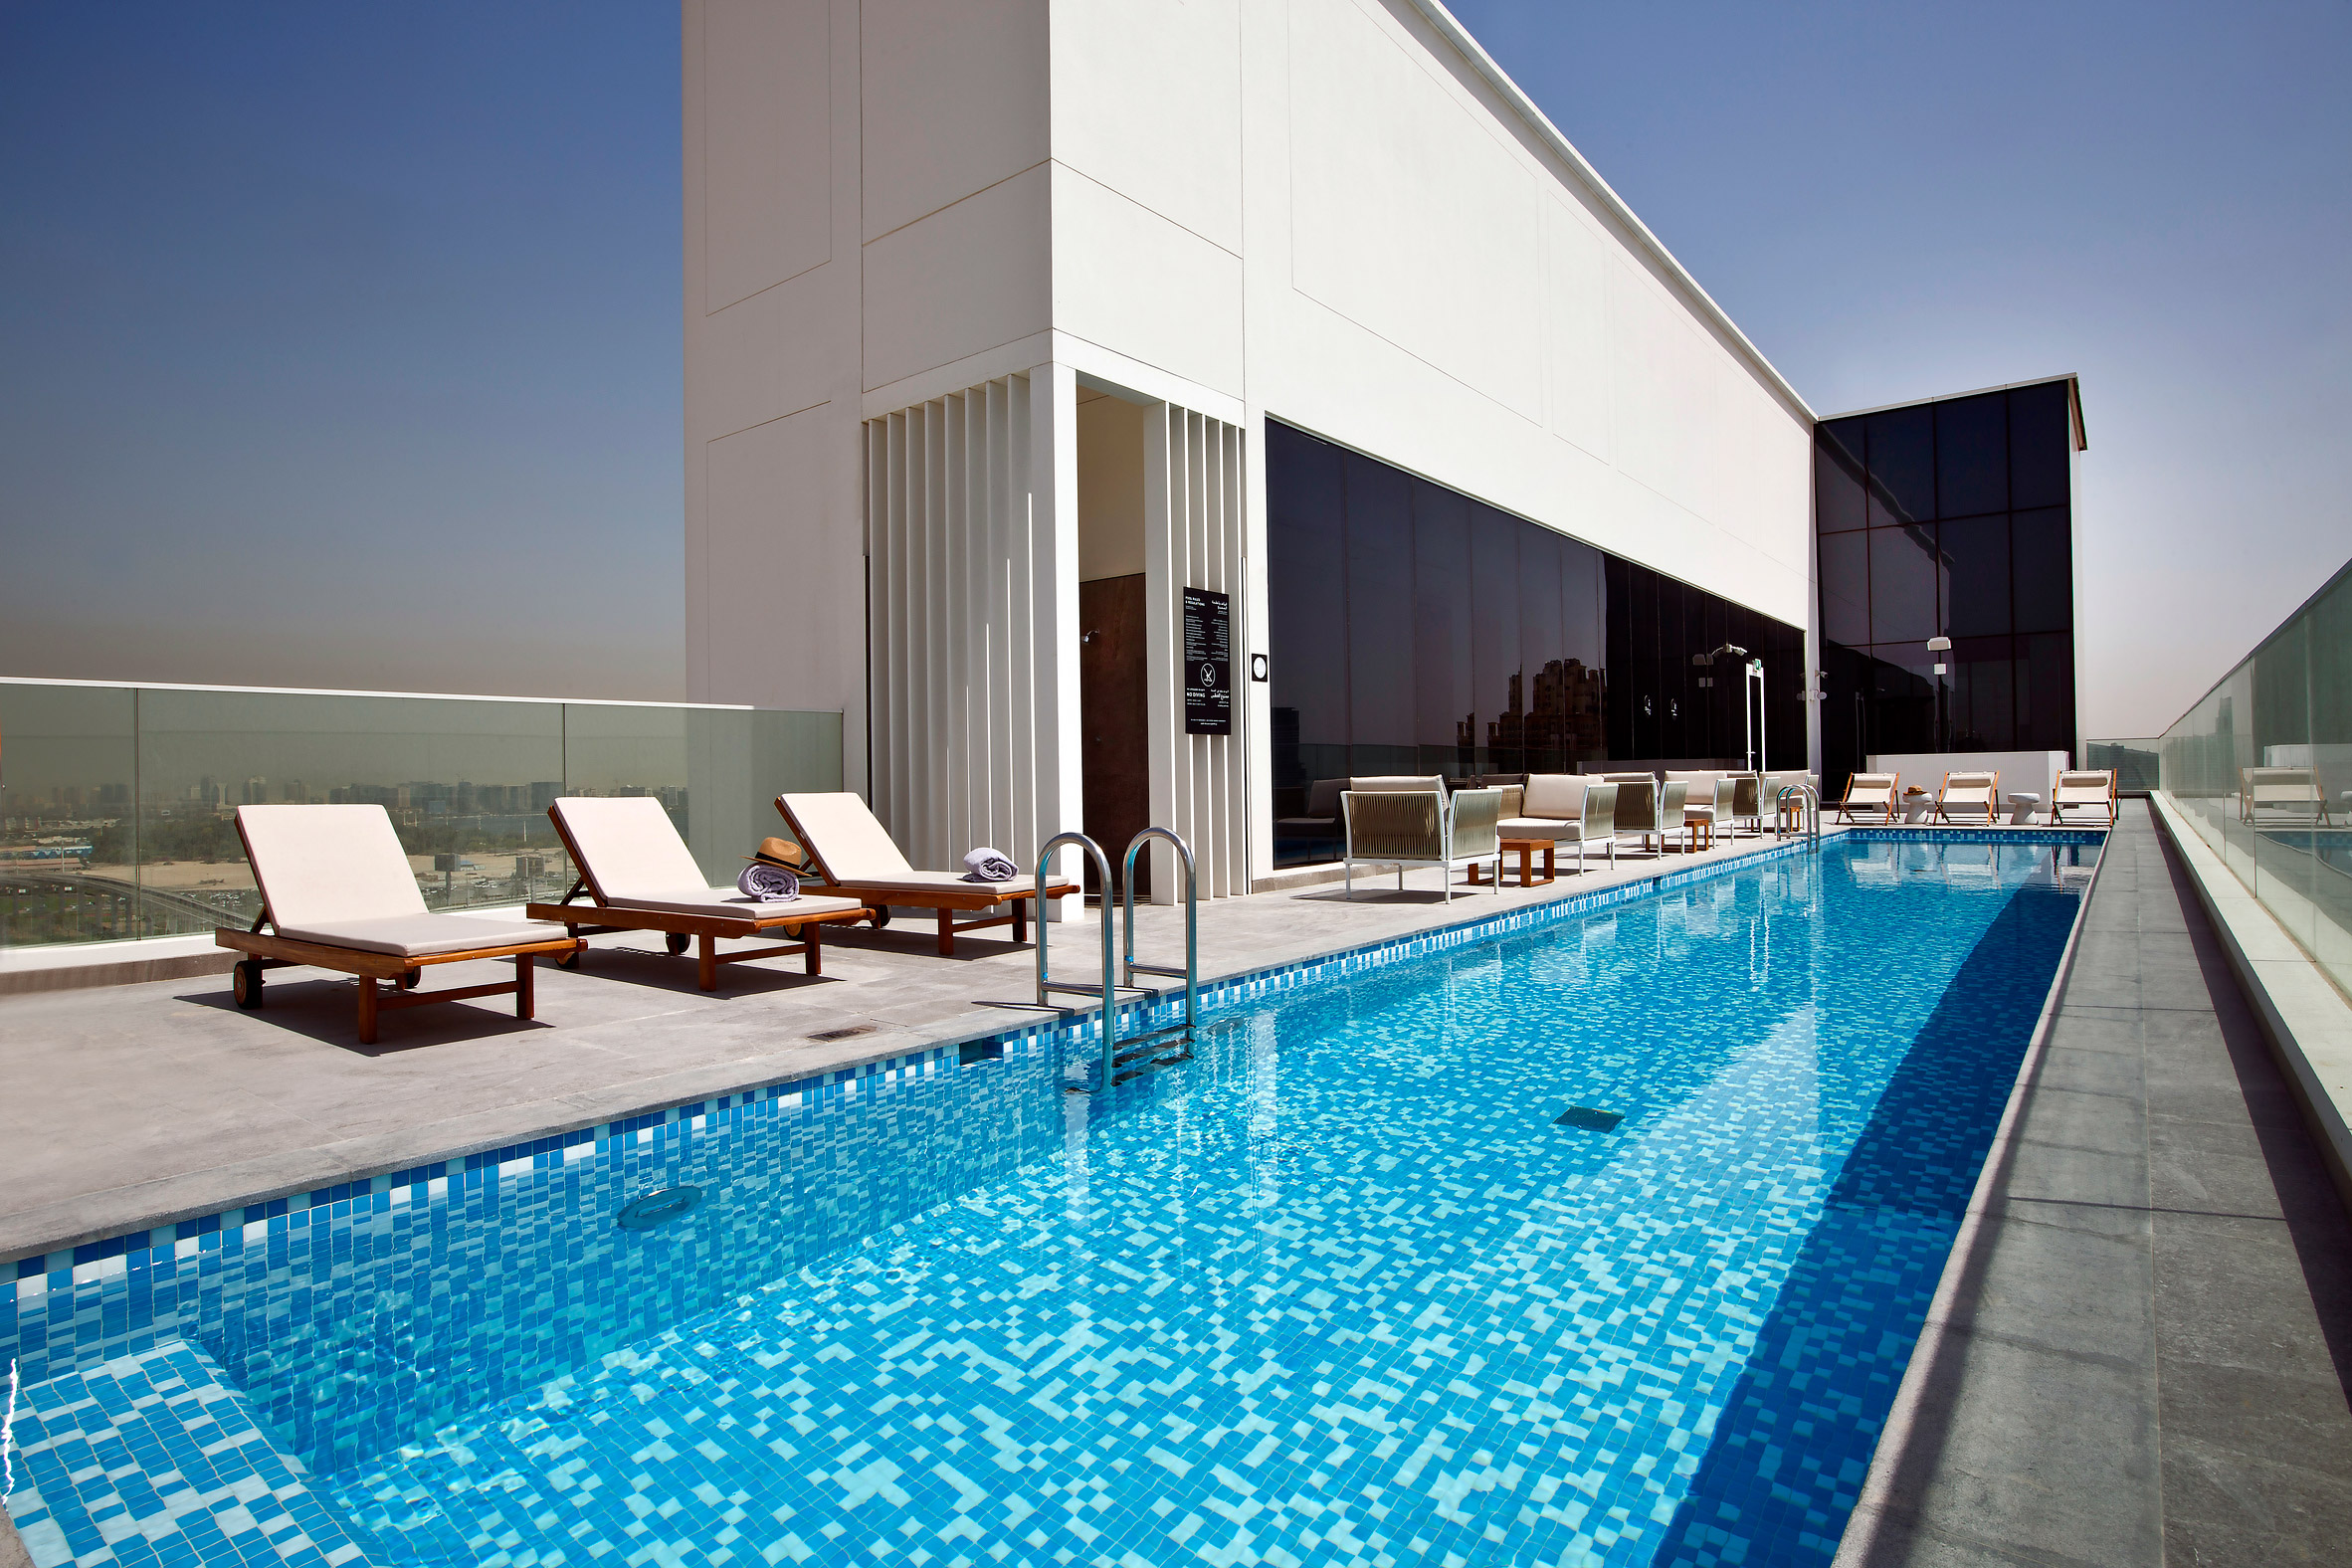 The rooftop swimming pool at Form Hotel Dubai, which won the Urban Hotel category and was named New Concept of the Year at the AHEAD MEA 2018 hospitality awards